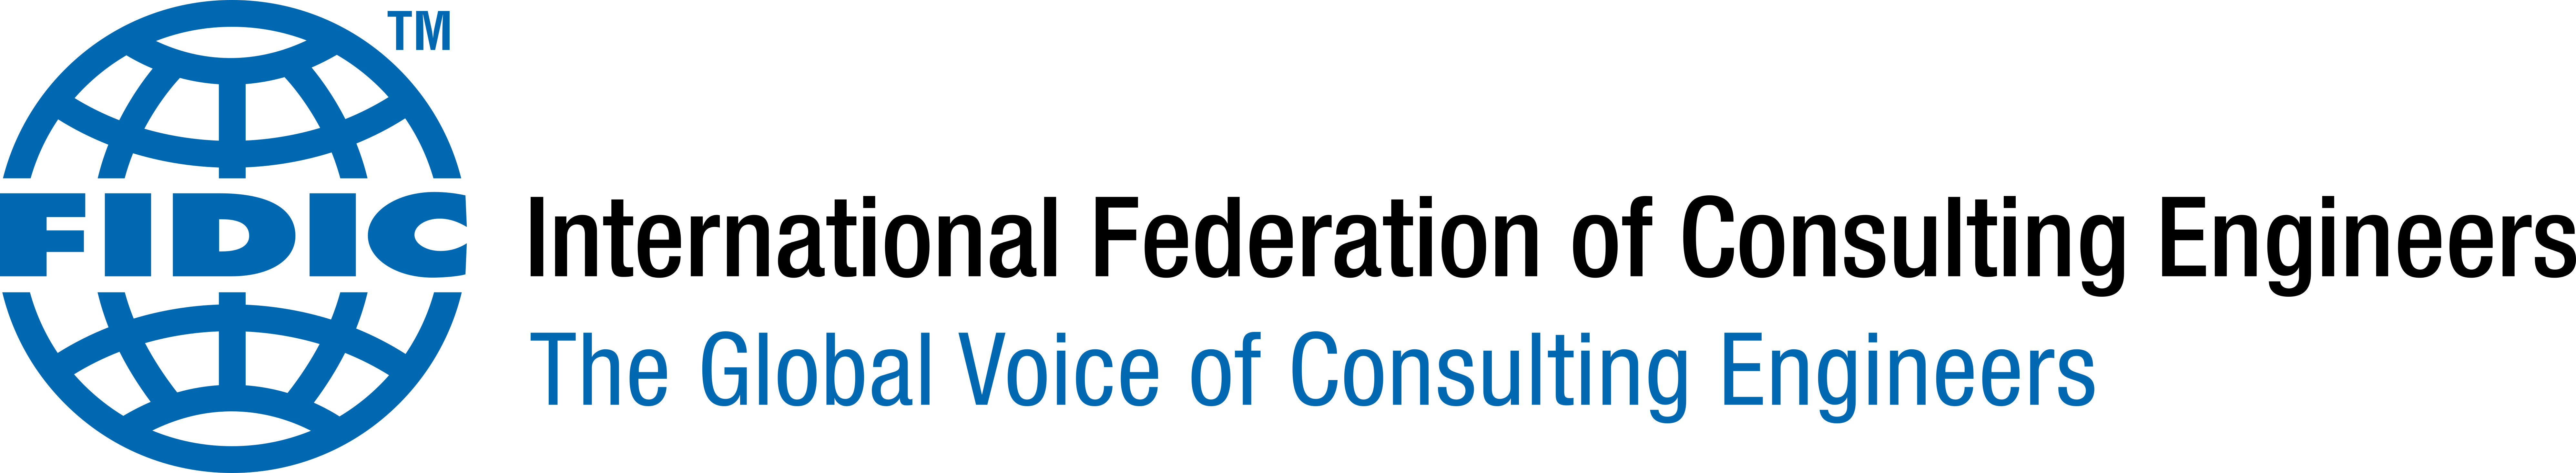 FIDIC_logo_293-text.jpg?profile=RESIZE_710x